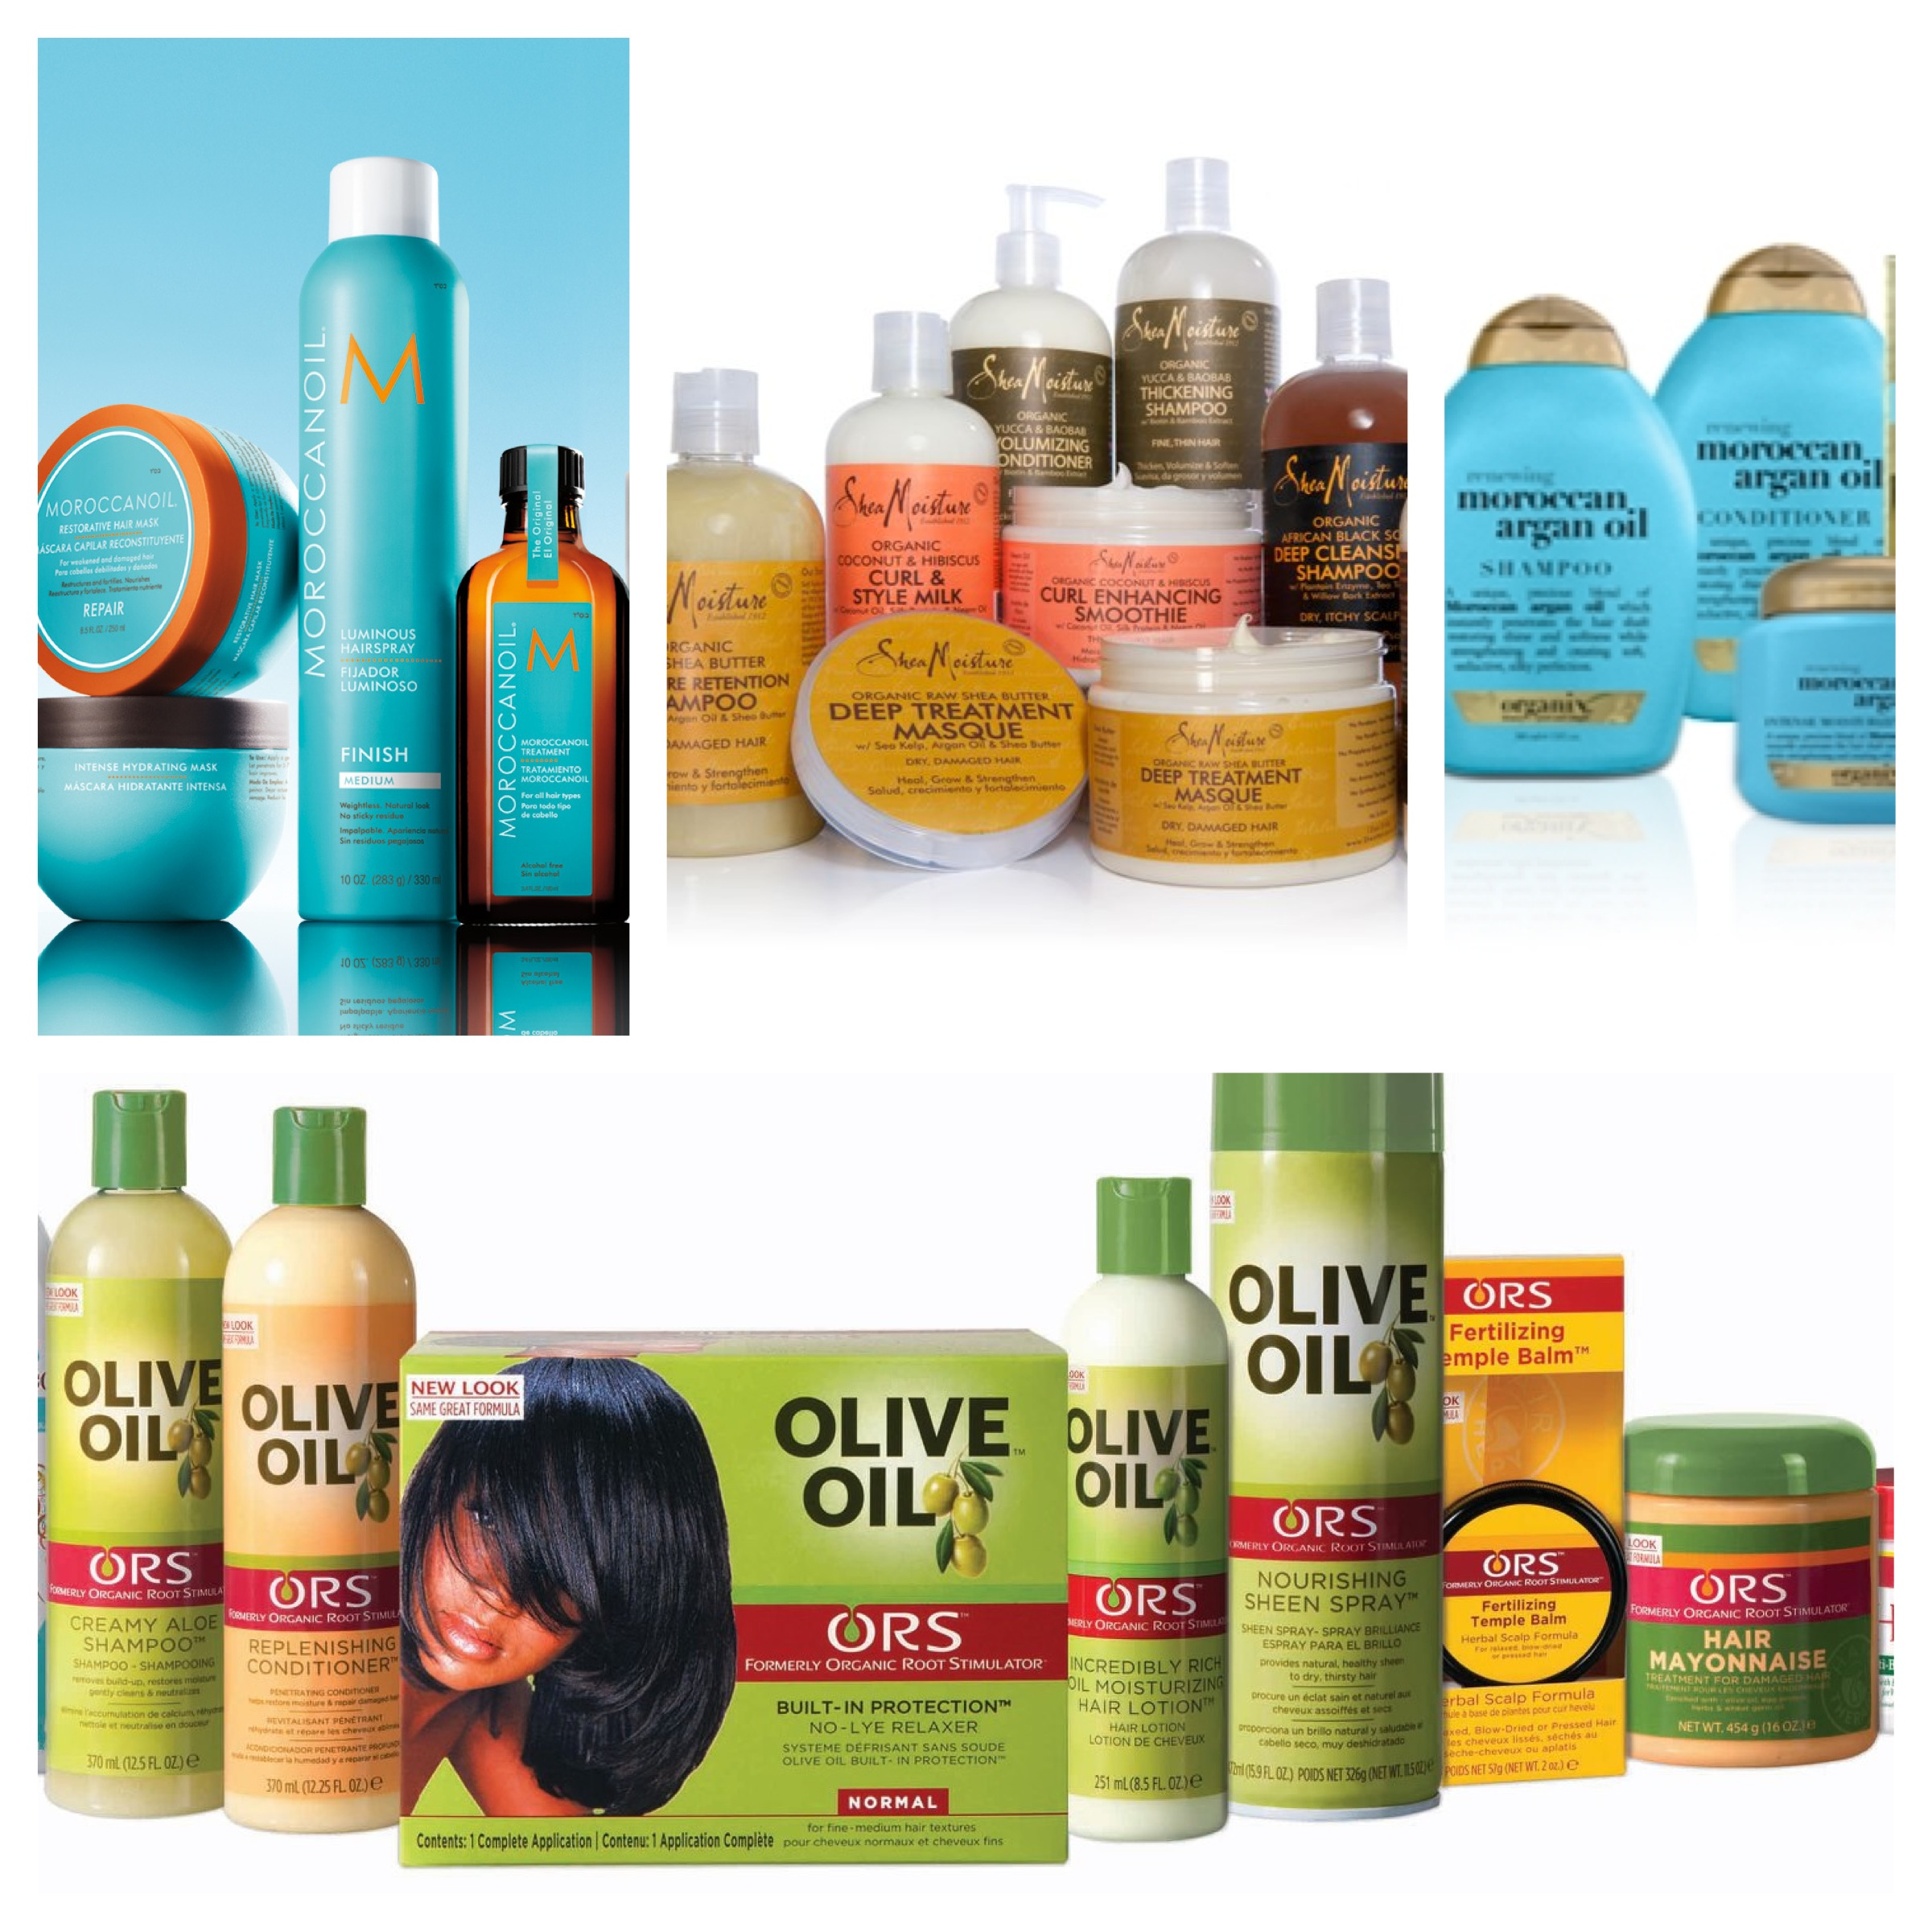 Olive Oil Hair Products For Natural Black Hair